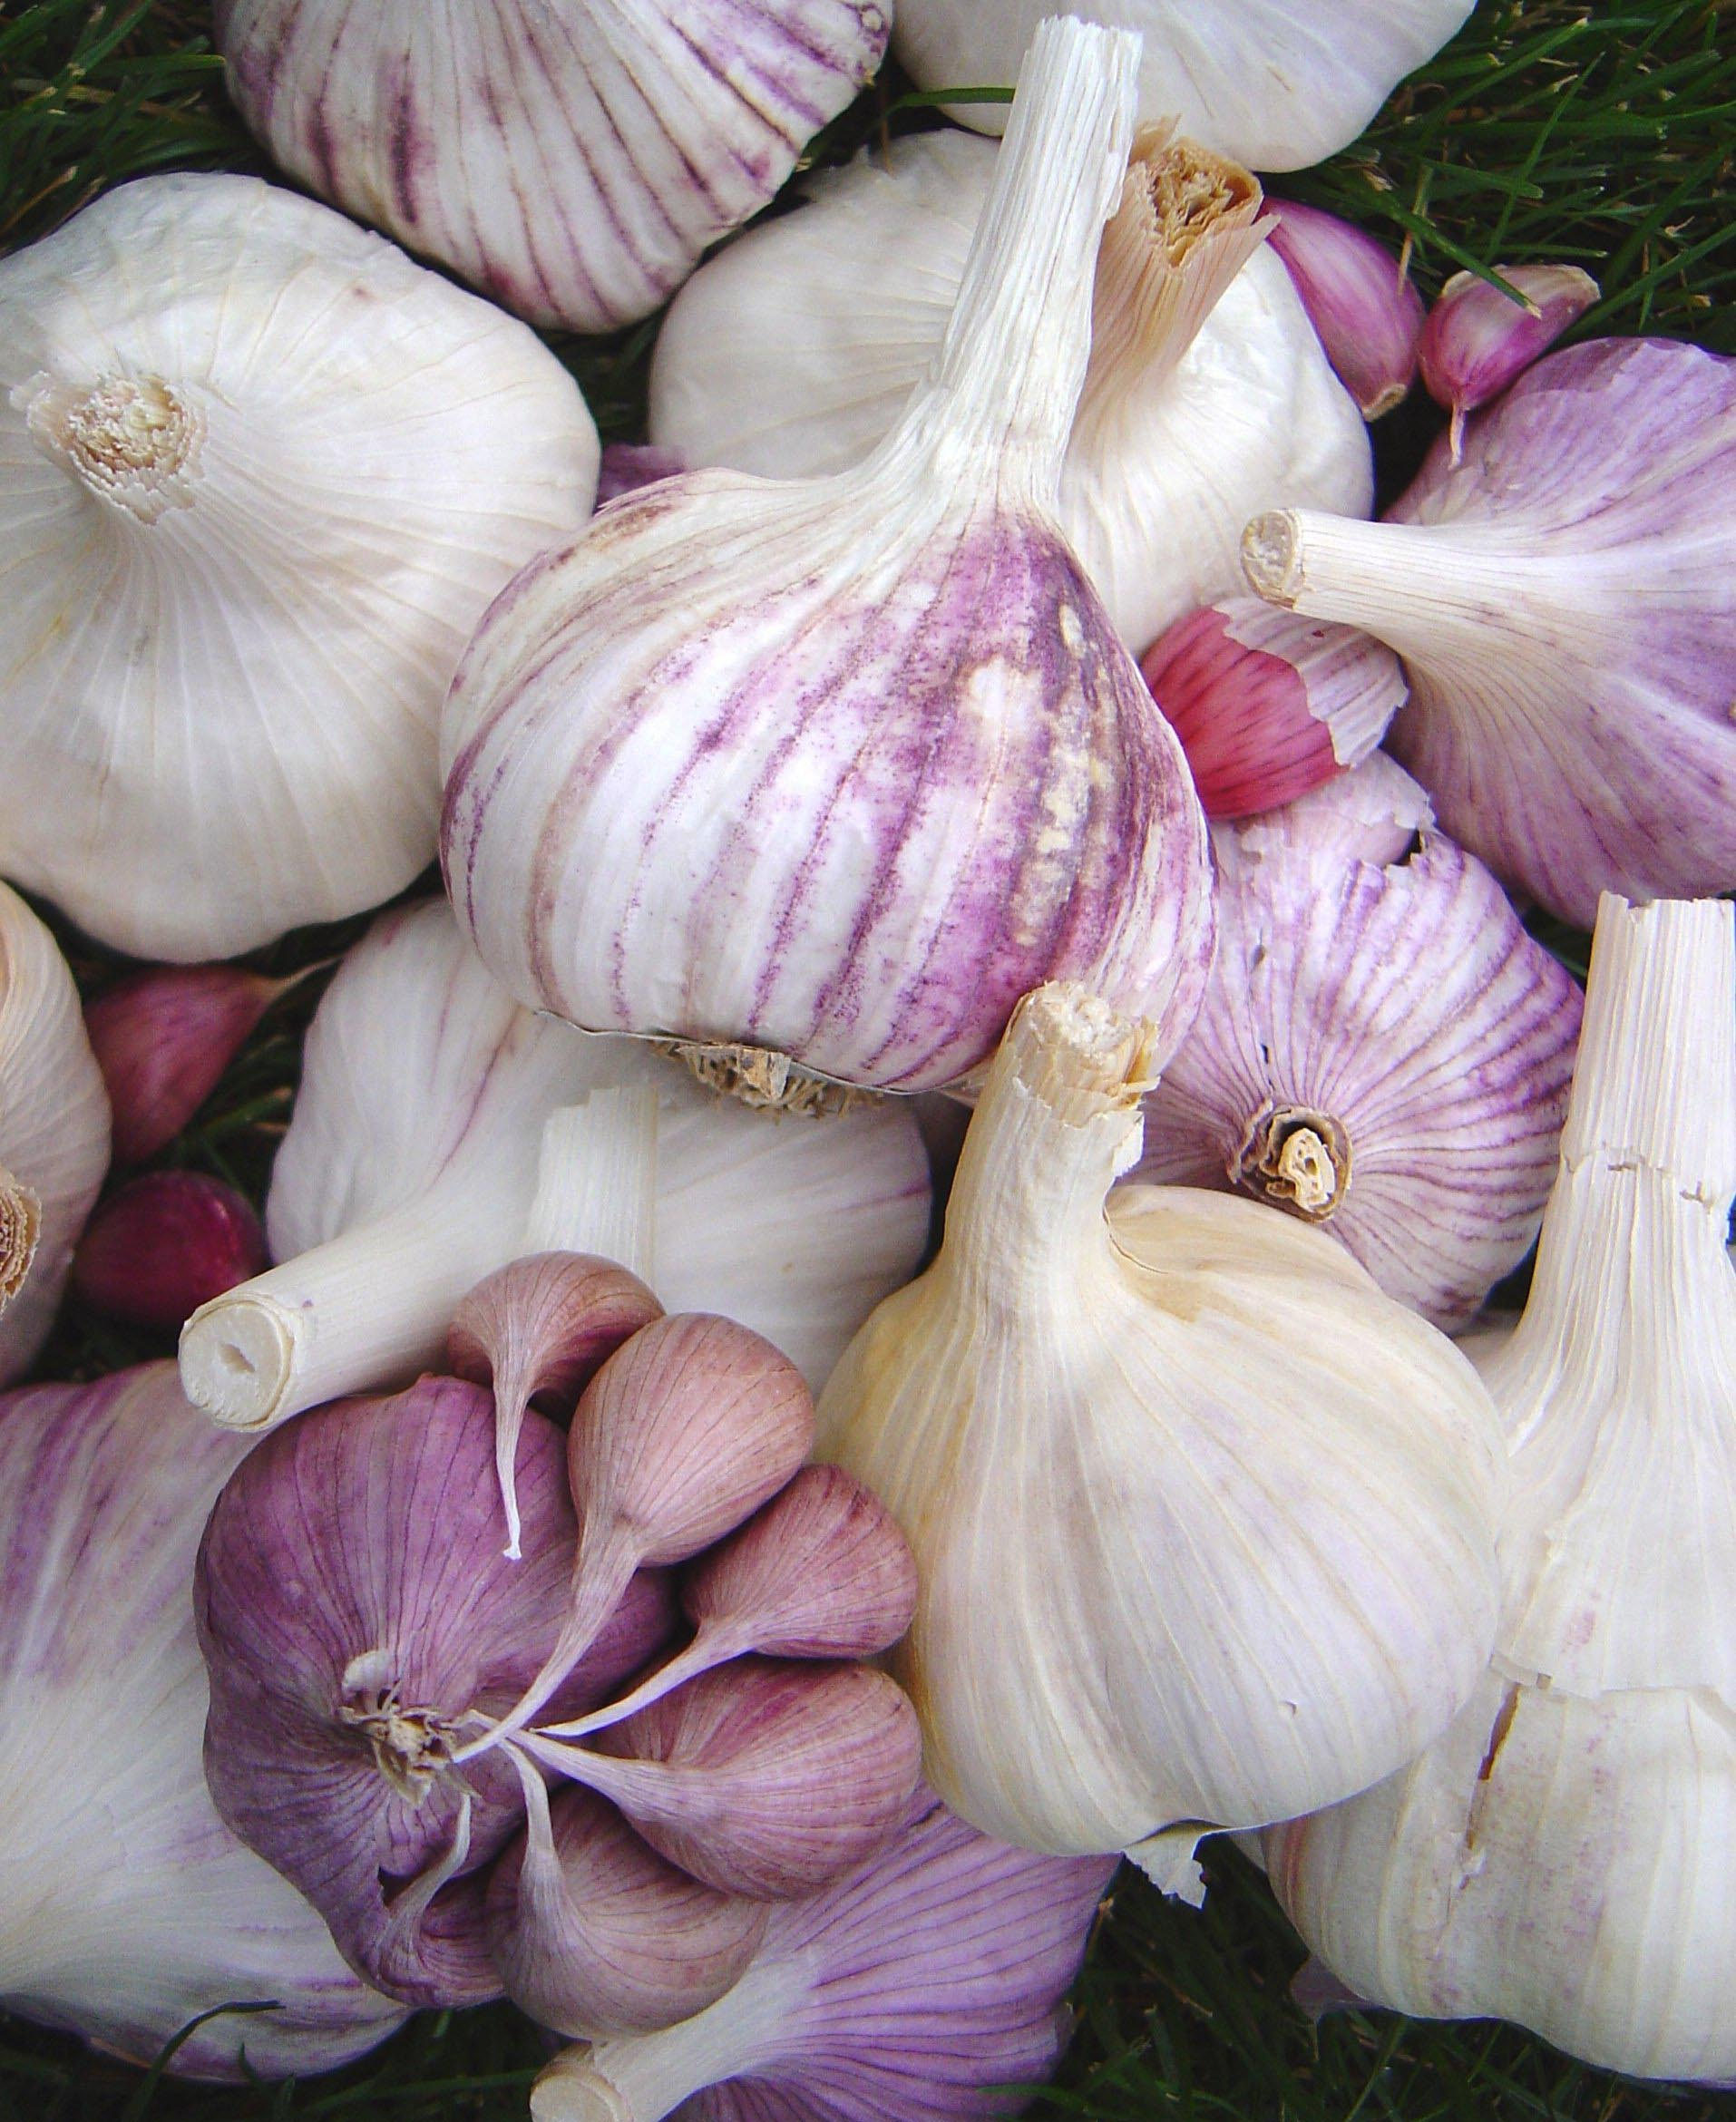 garlic bulbs of many types